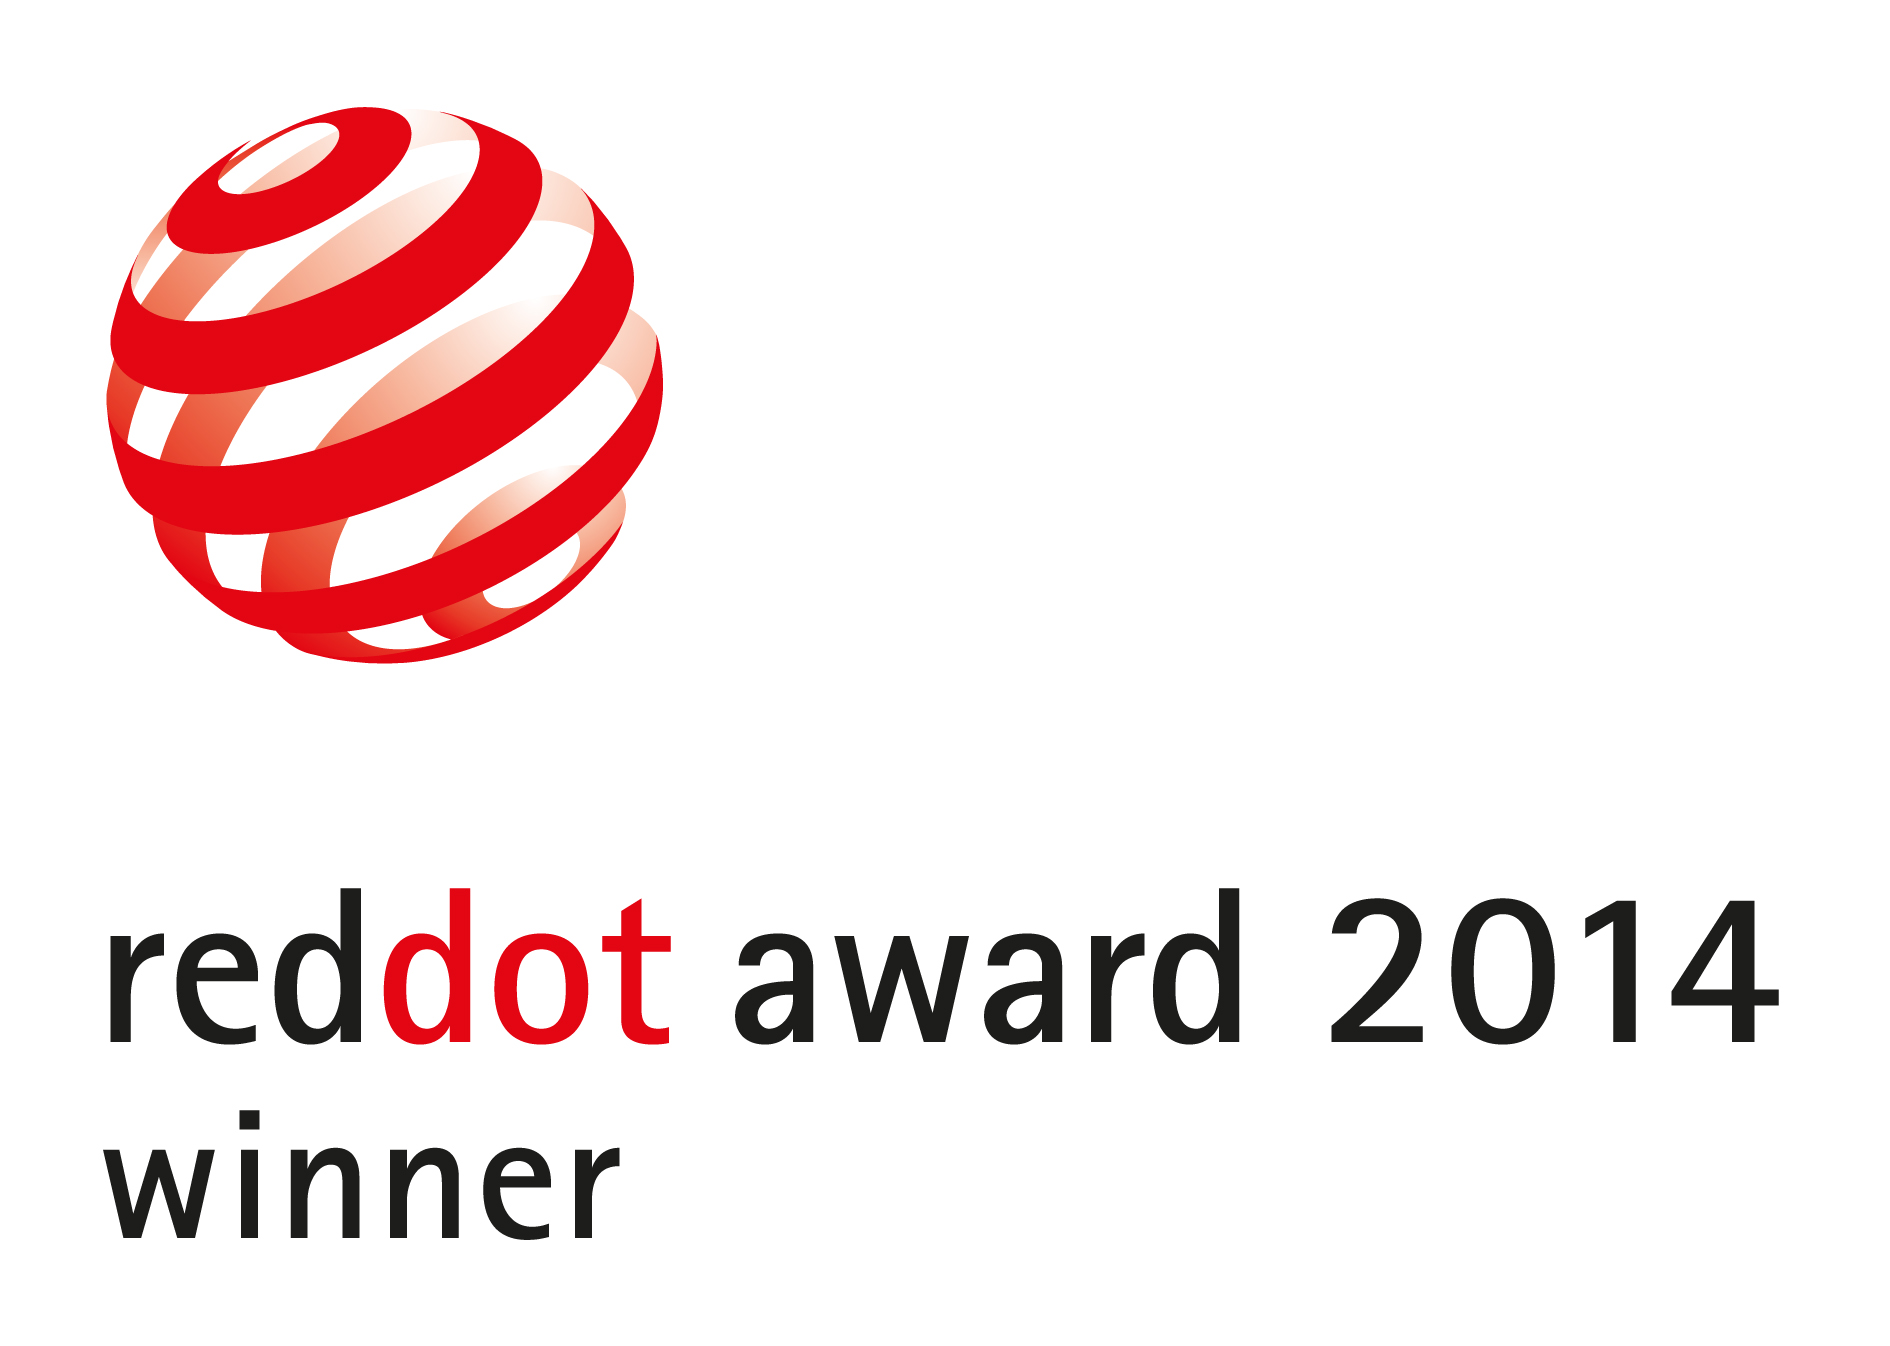 Kaminofen Red Dot Design Presse Kaminofen Gewinnt Red Dot Award 2014